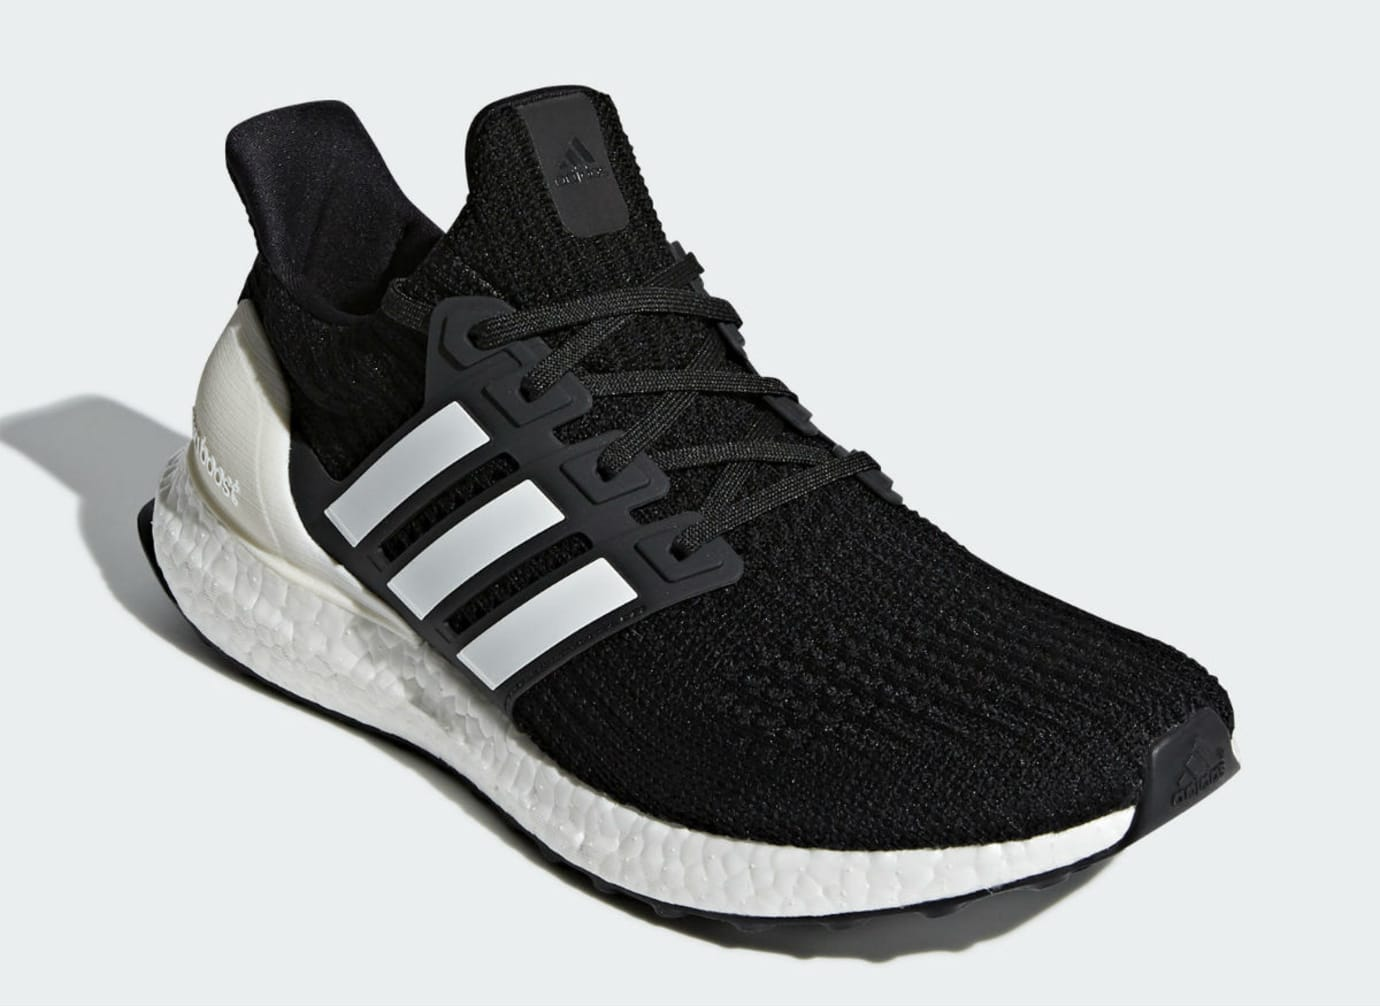 738e70e036b52 Image via Adidas Adidas Ultra Boost 4.0 Show Your Stripes Core Black Cloud  White Carbon Release date AQ0062 Front